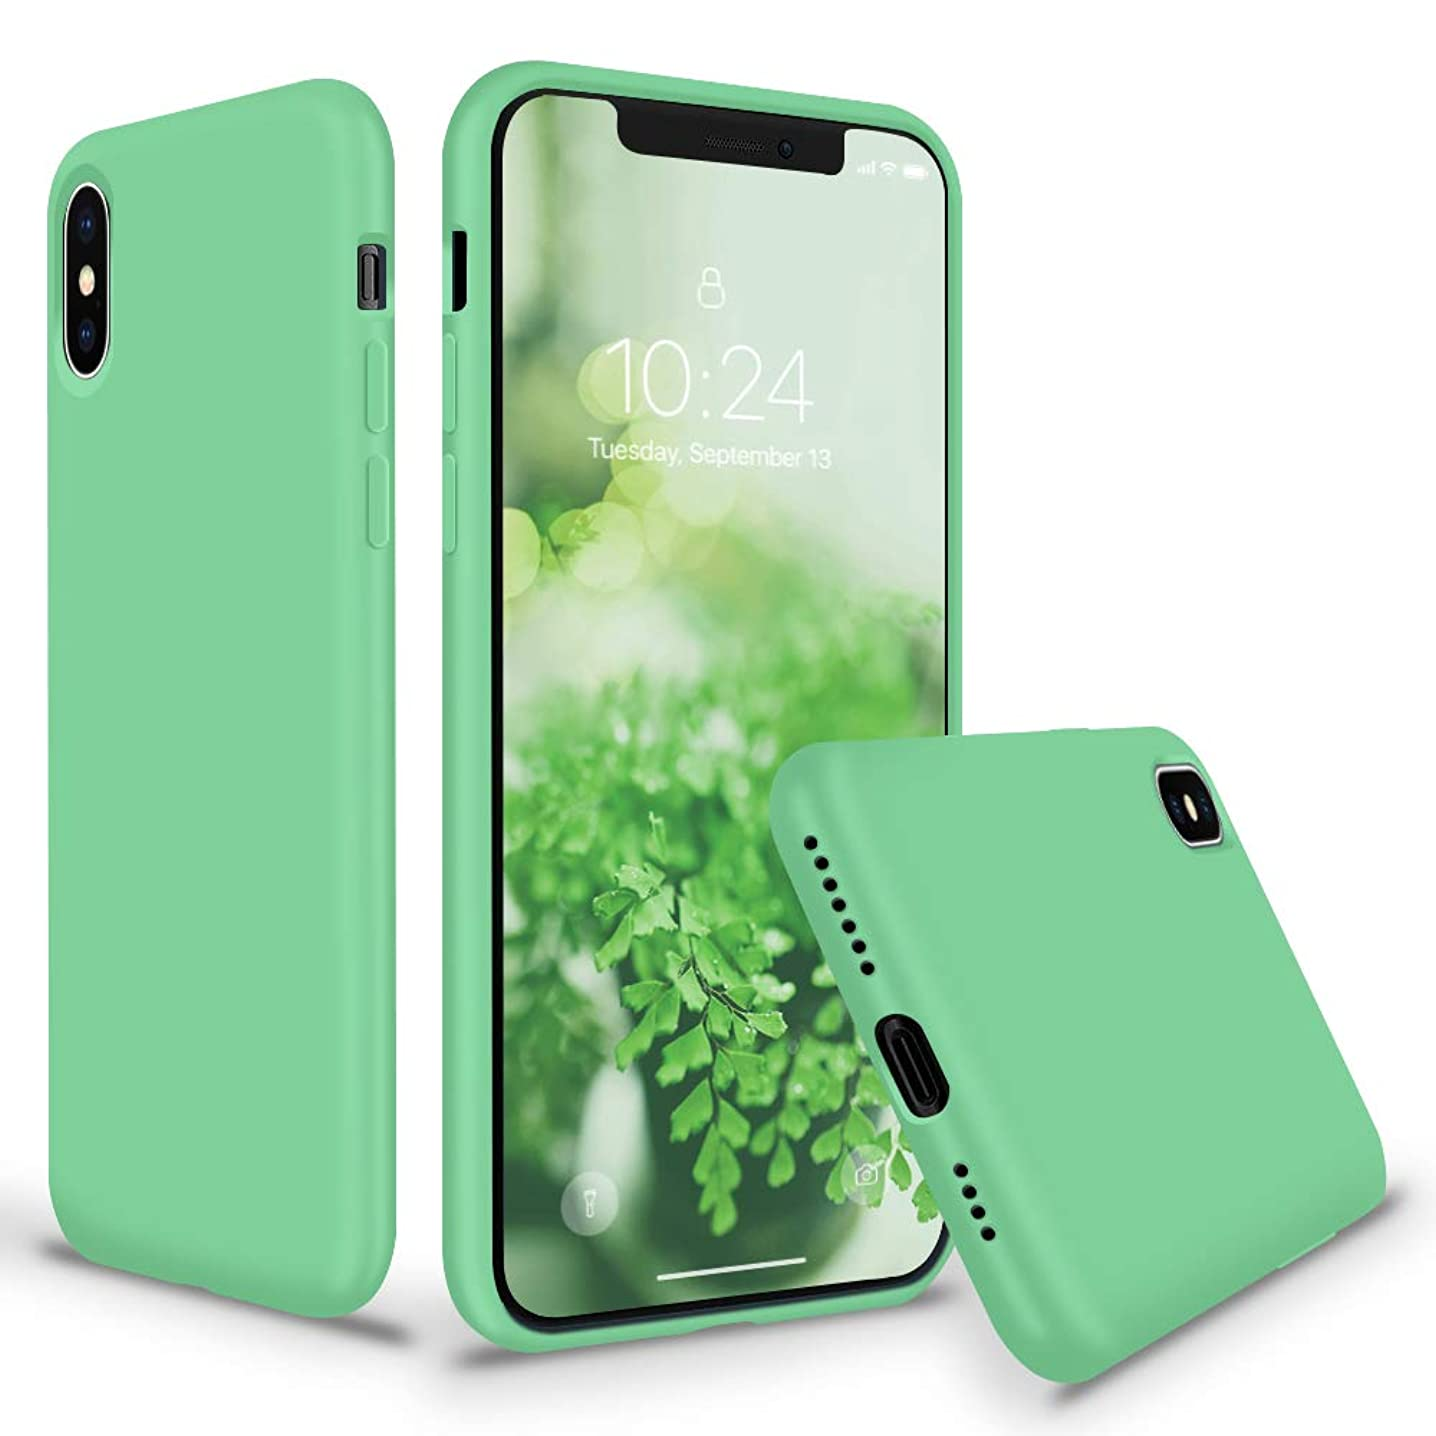 SURPHY Silicone iPhone Xs MAX Case, Slim Soft Liquid Silicone Rubber Full Body Protection Phone Case Cover with Microfiber Lining for Apple iPhone Xs MAX Case 6.5